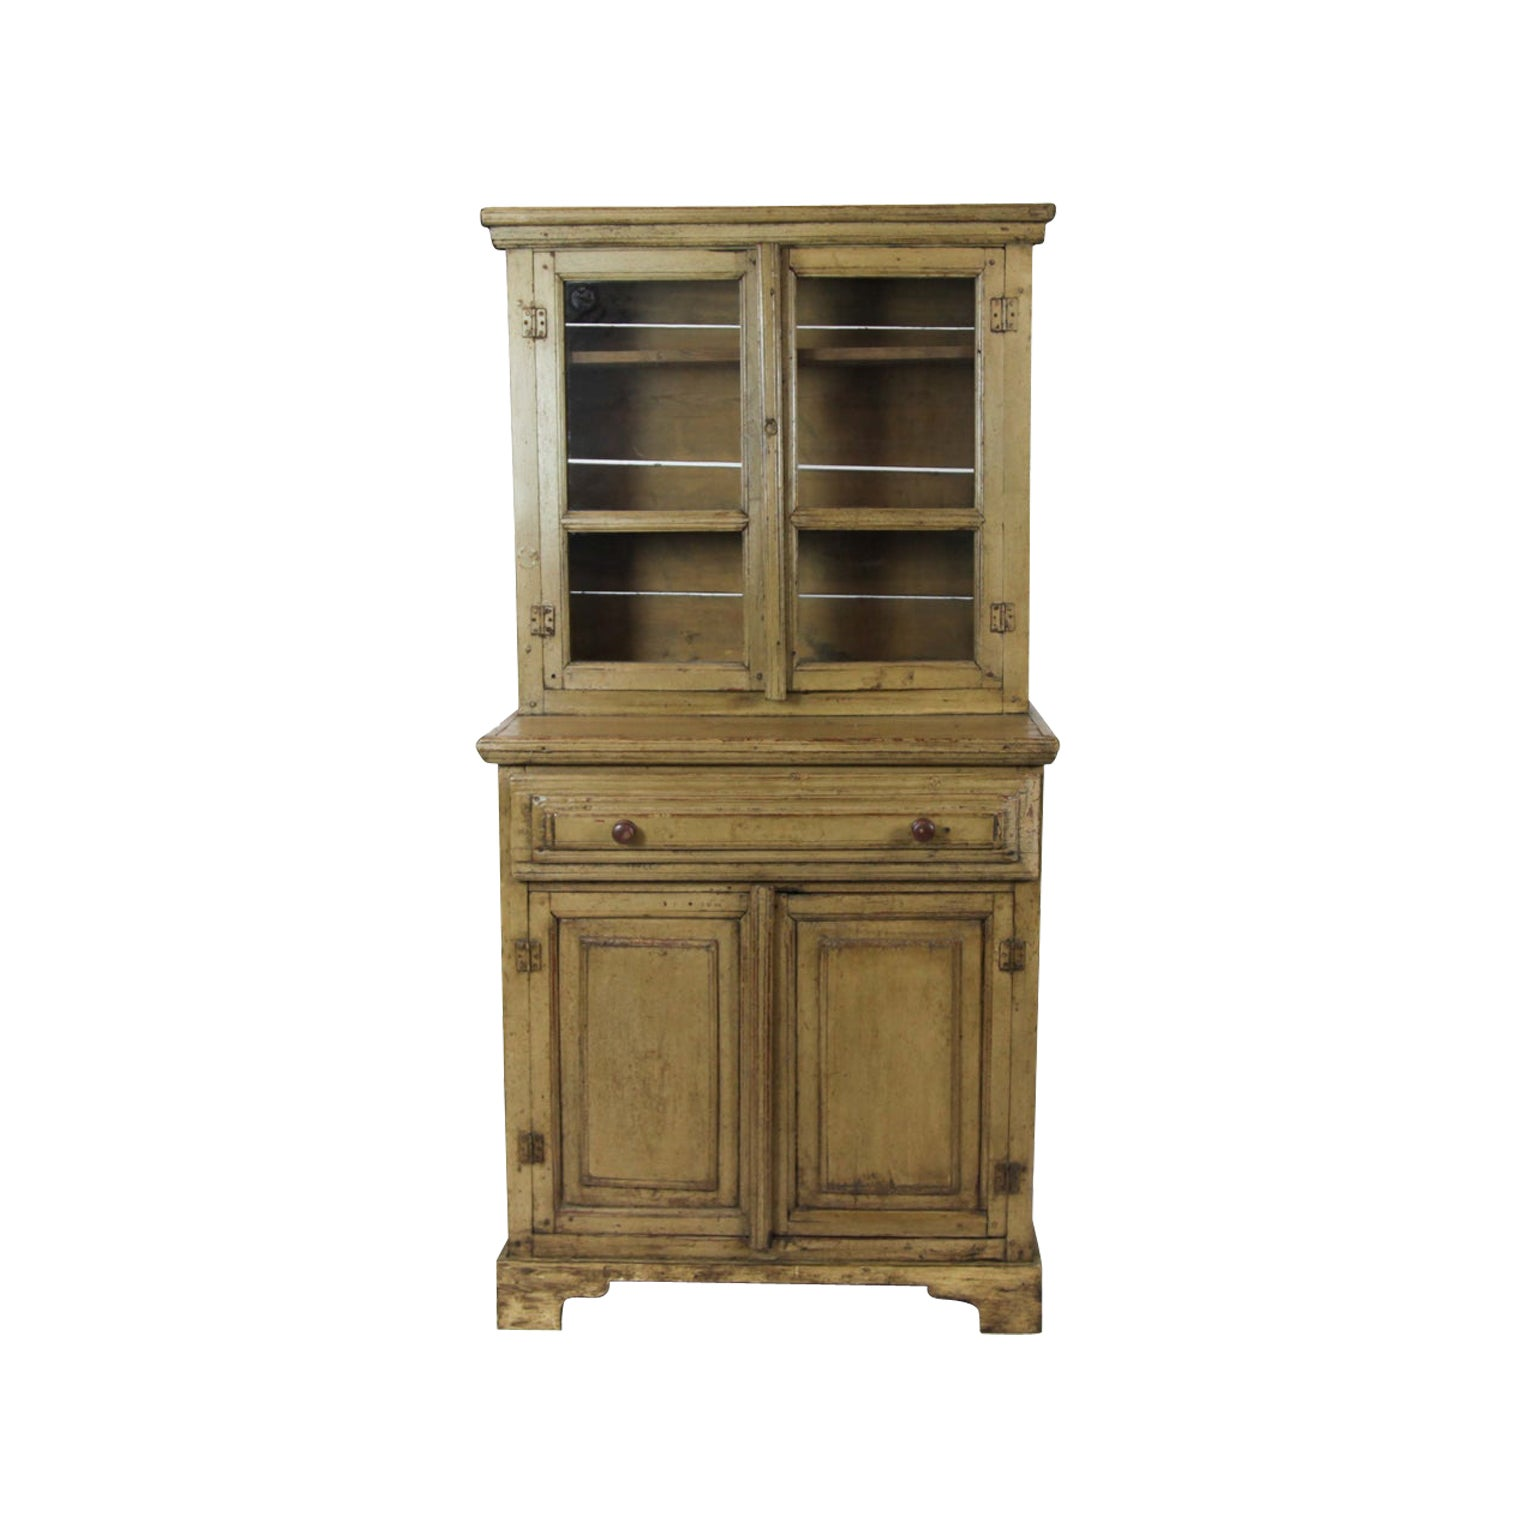 19th Century Painted Step Back Cupboard